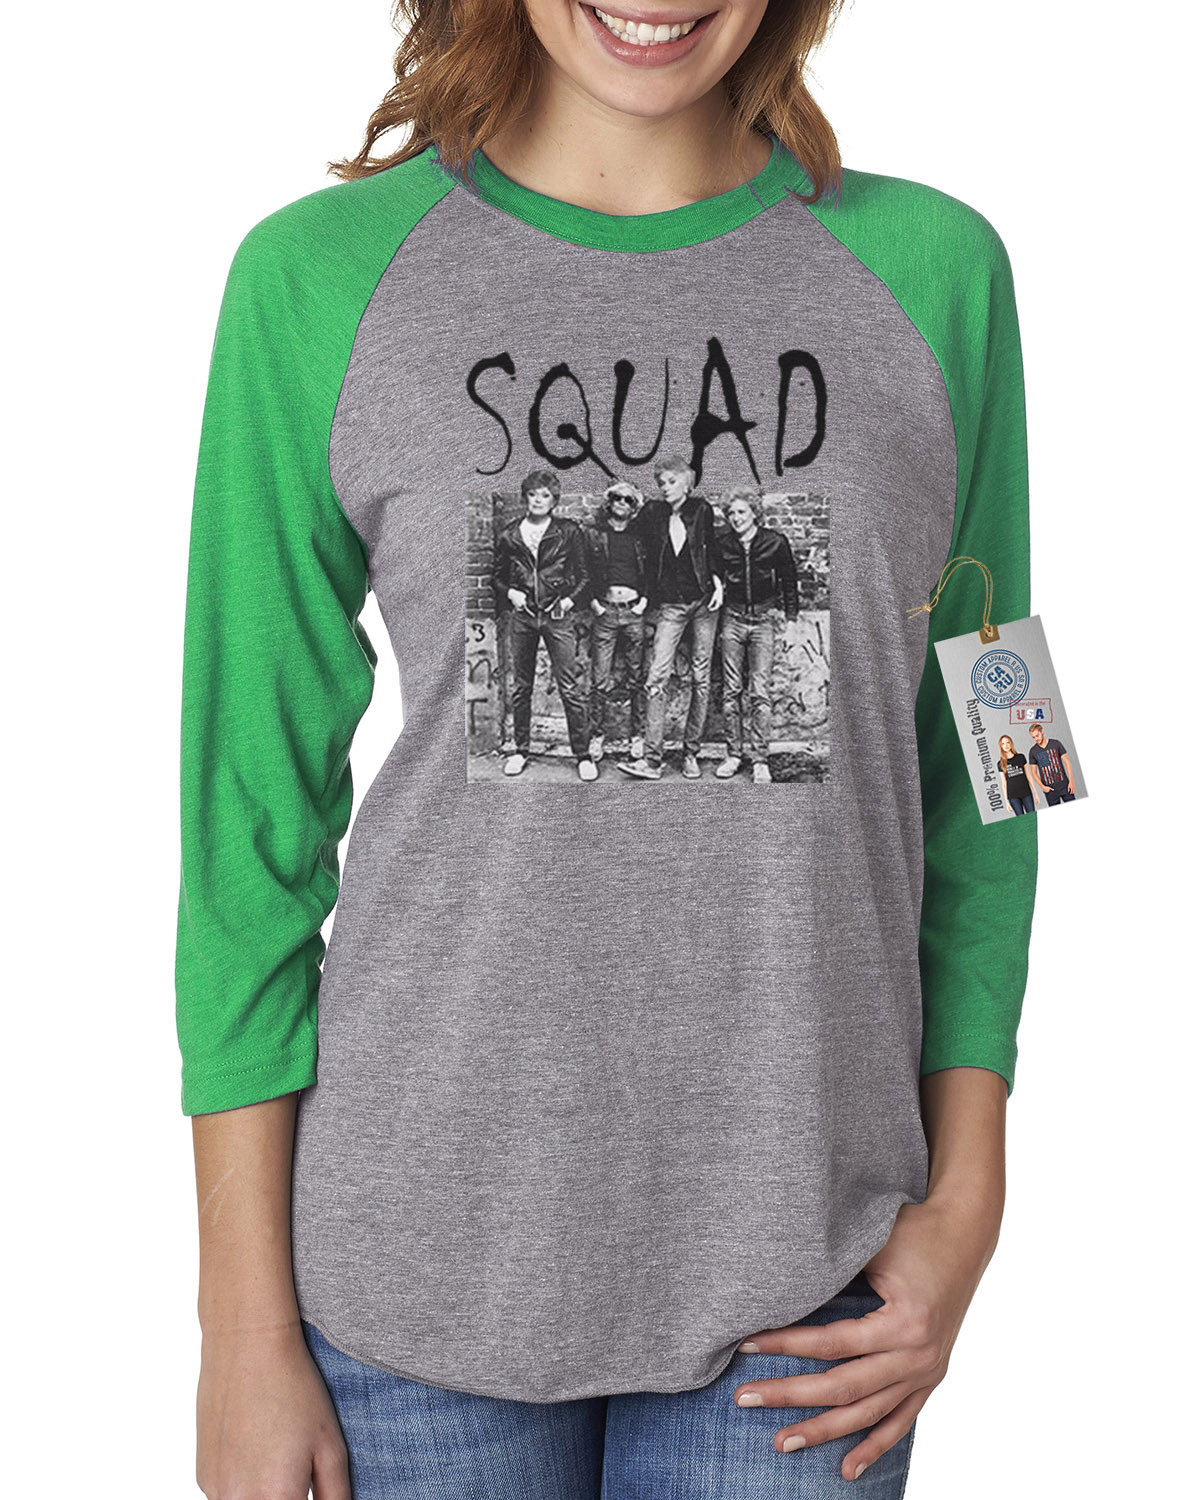 Golden Girls Squad Gang TV Show Womens 3/4 Raglan Sleeve Shirt Top